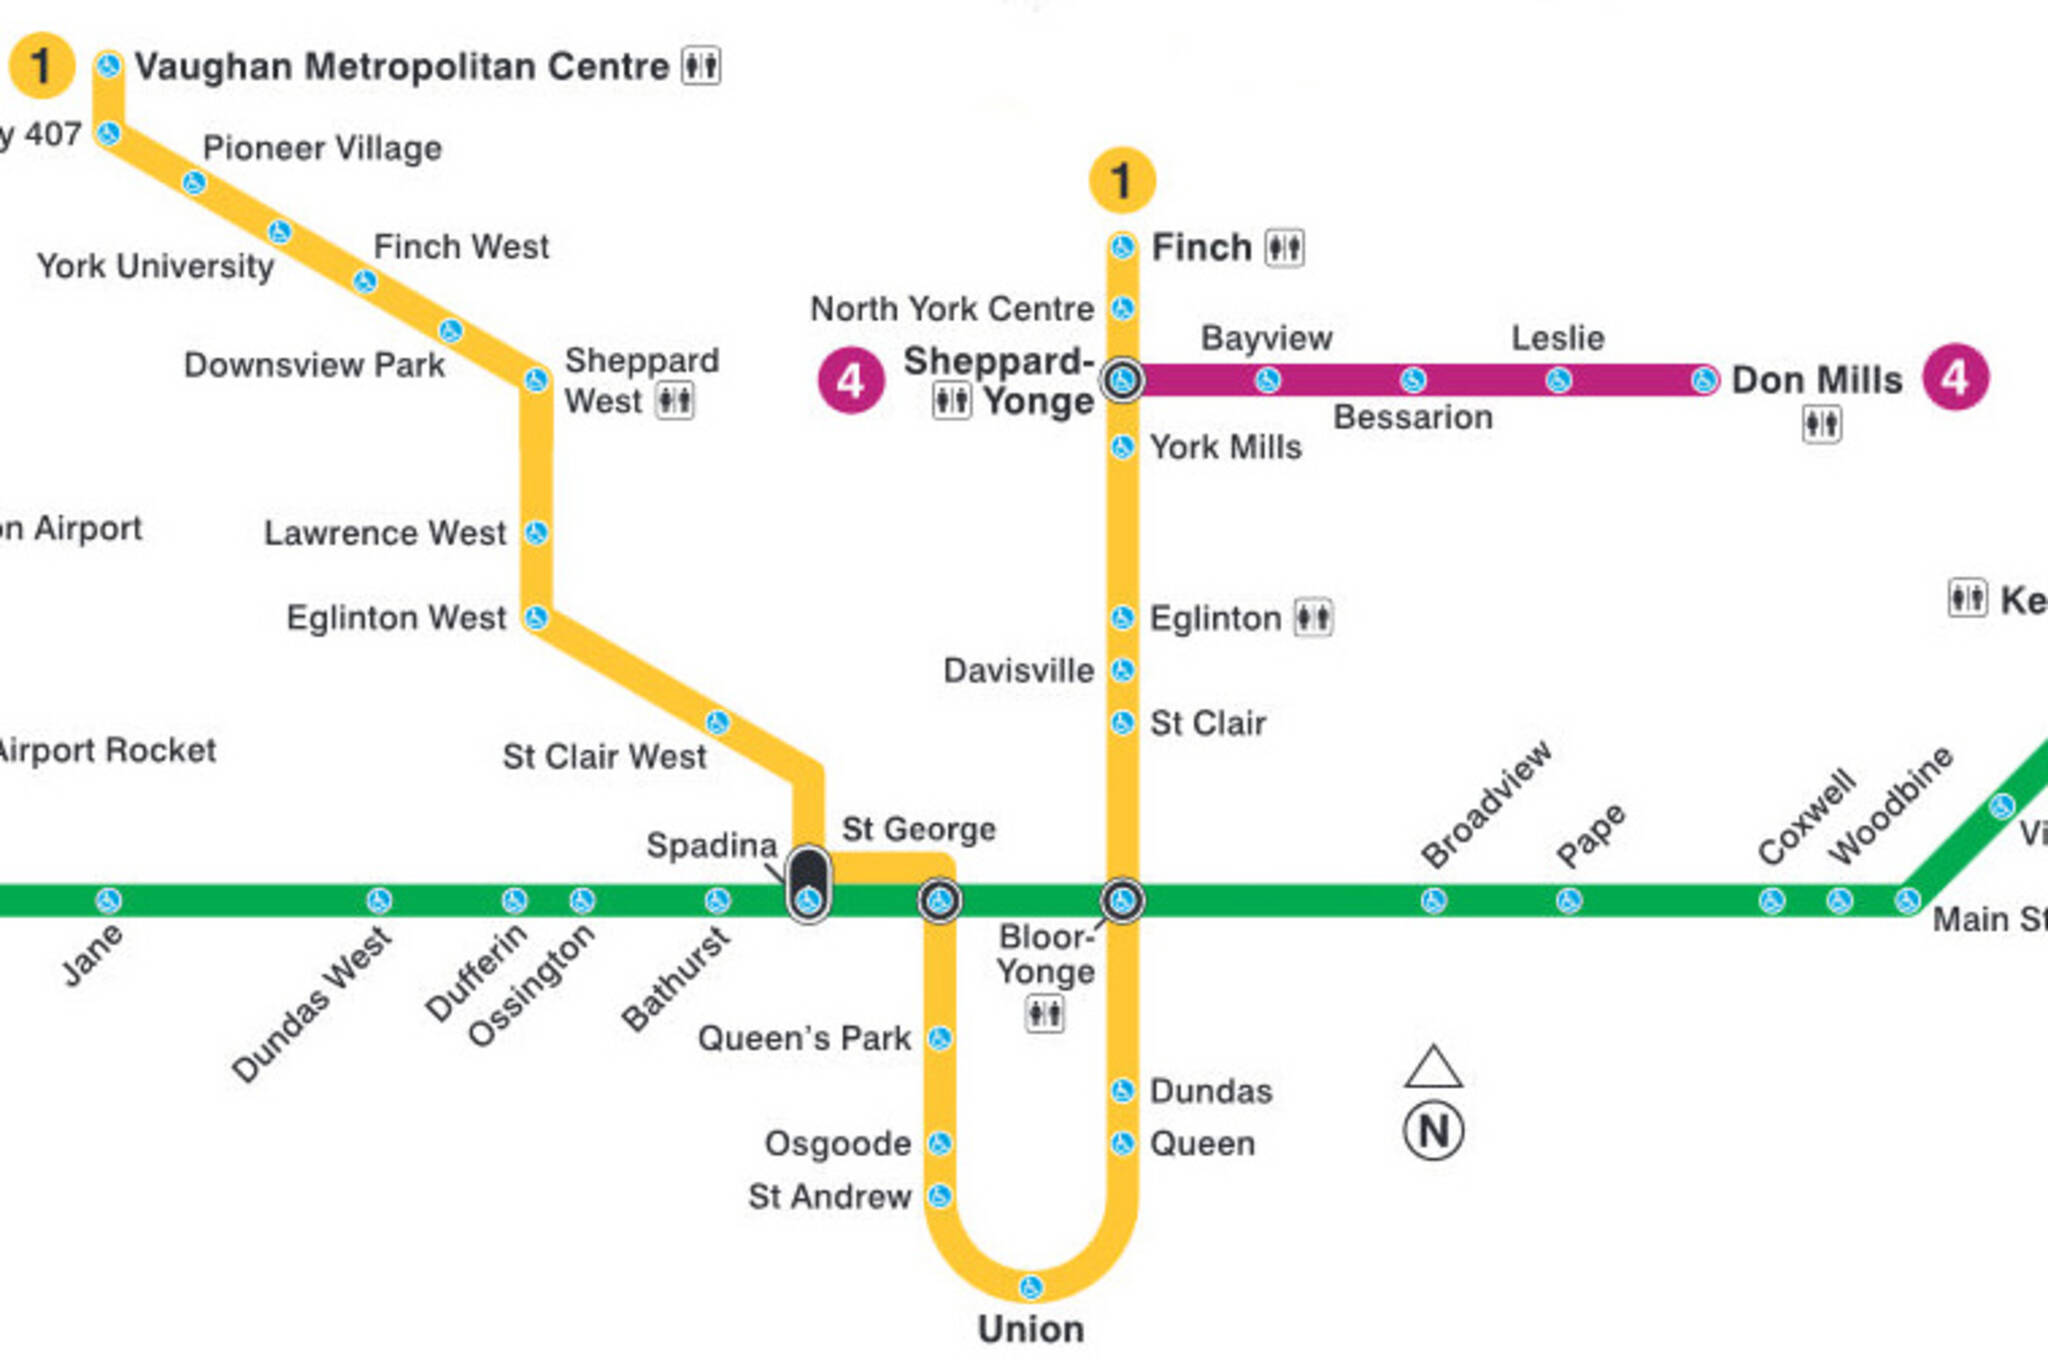 Ttc Station Map Someone created a TTC subway map with only accessible stations